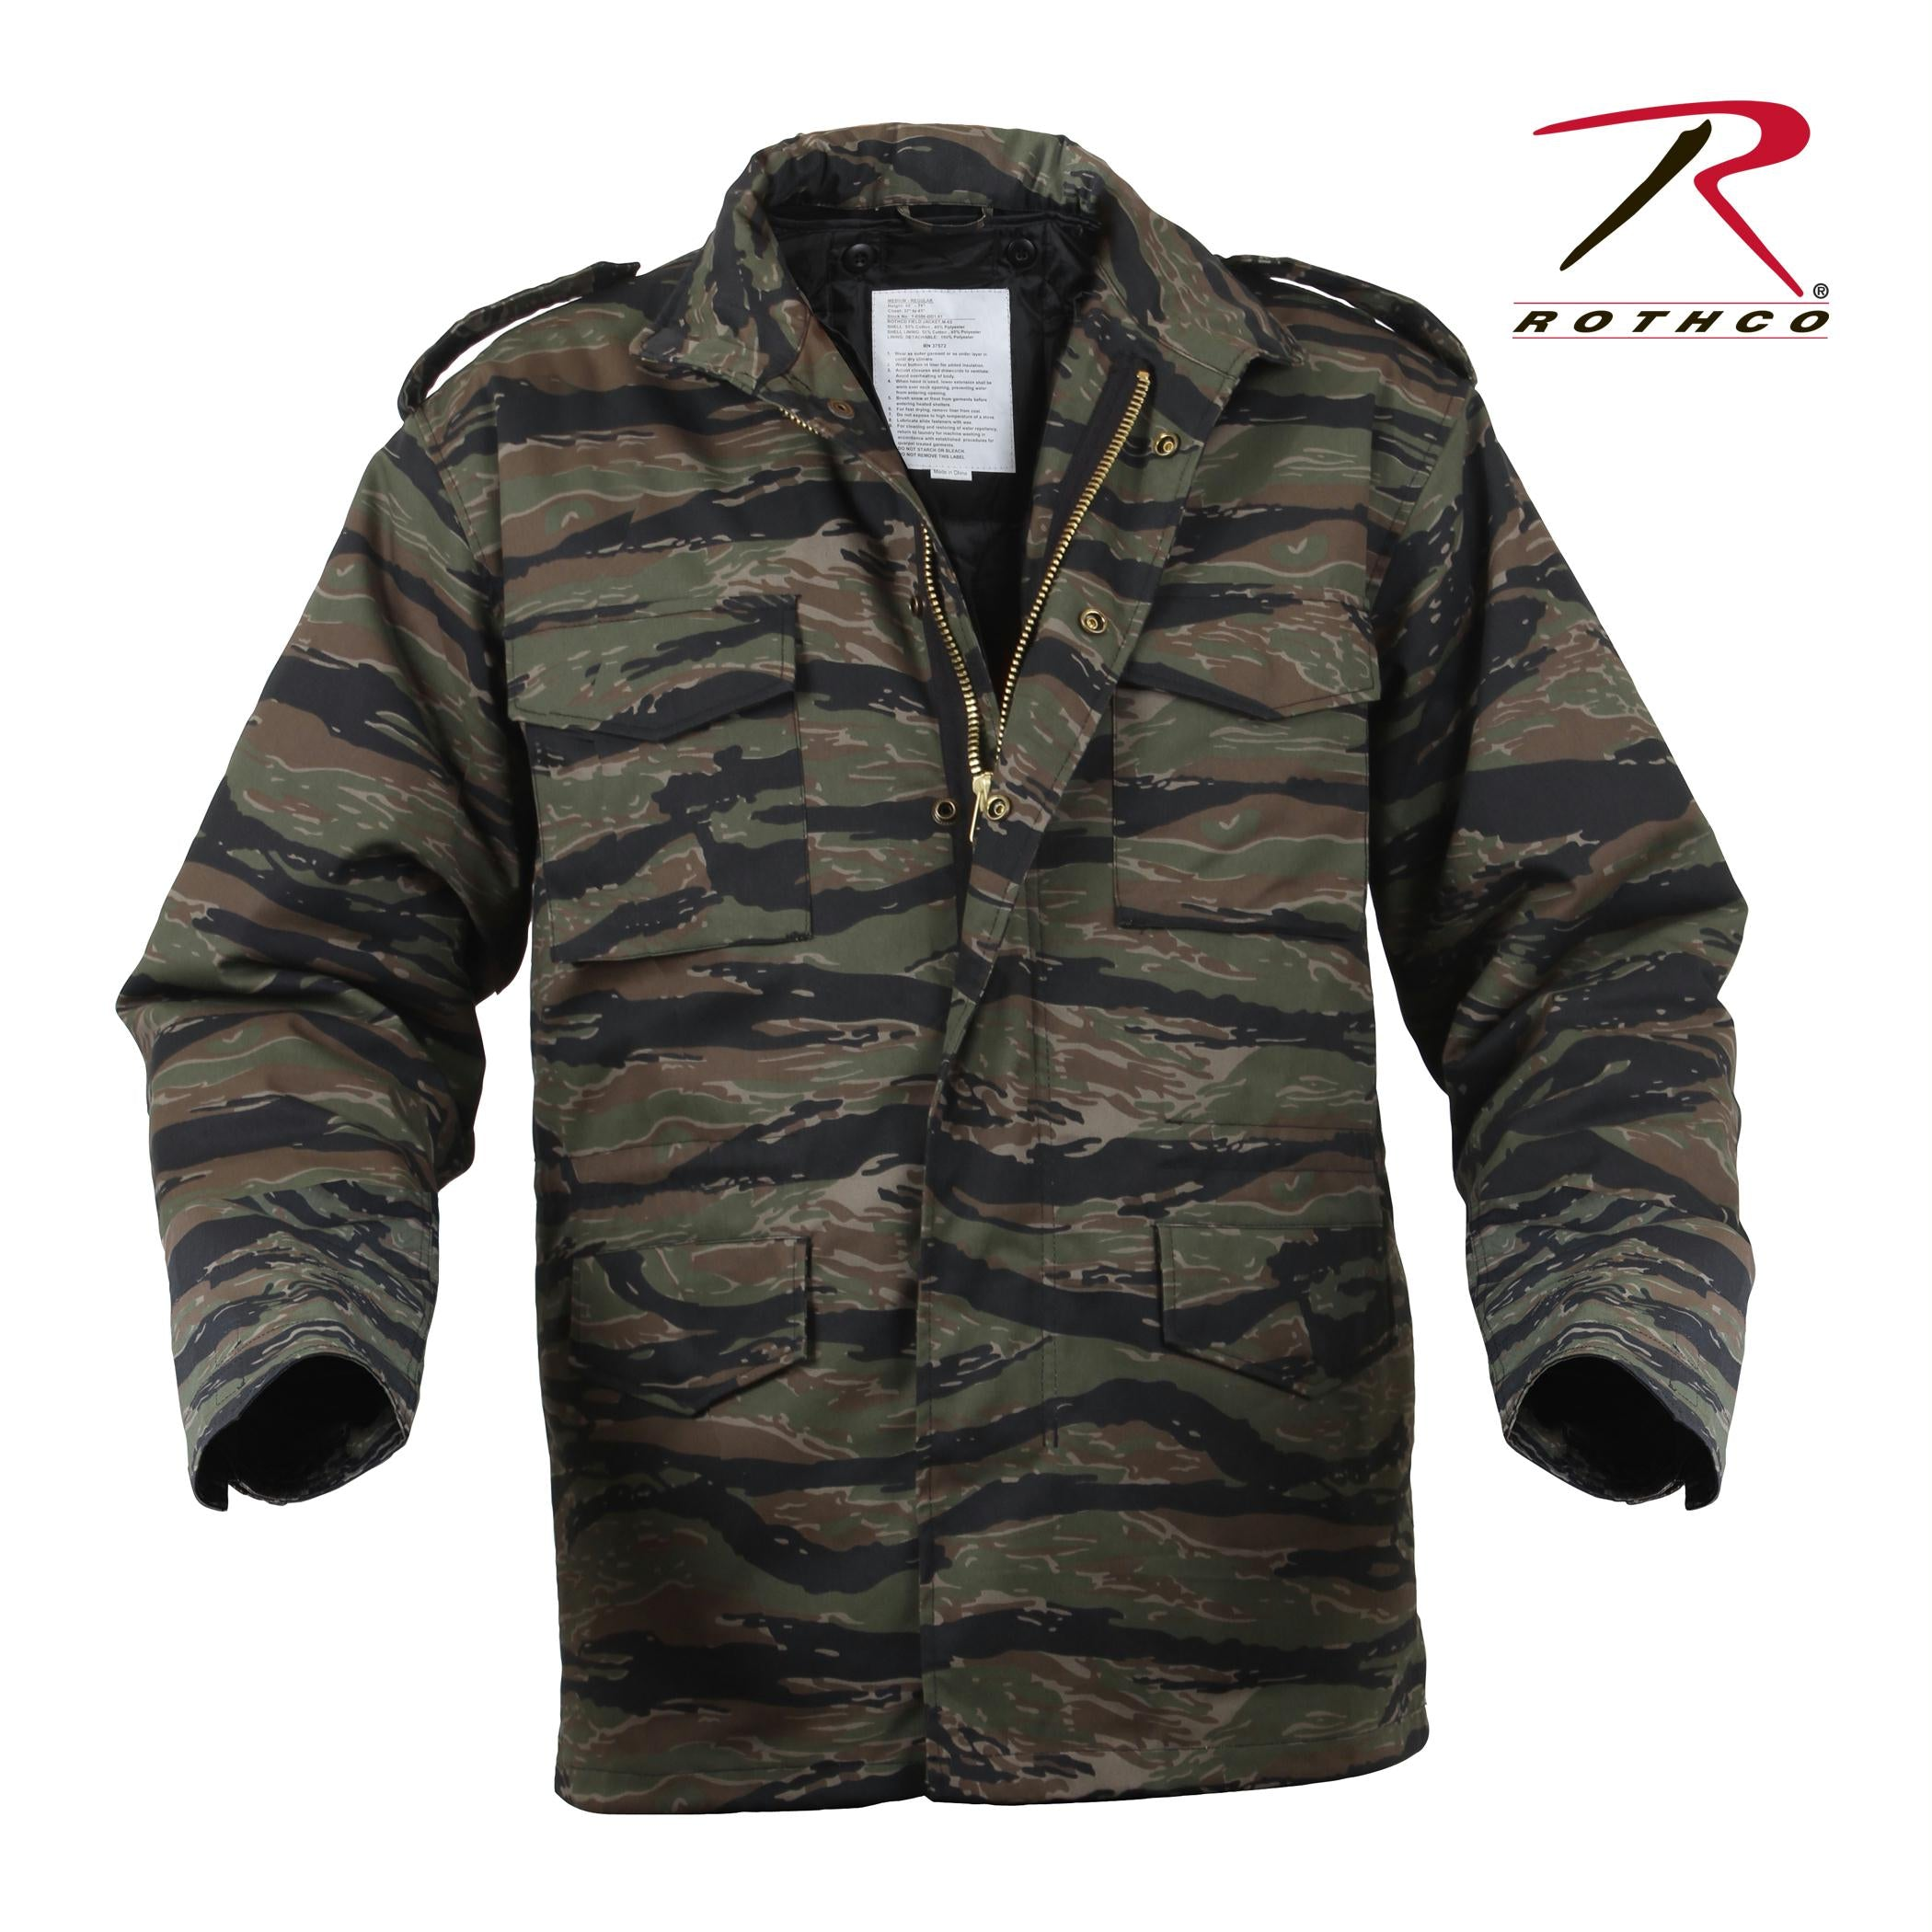 Rothco M-65 Camo Field Jacket - Tiger Stripe Camo / M